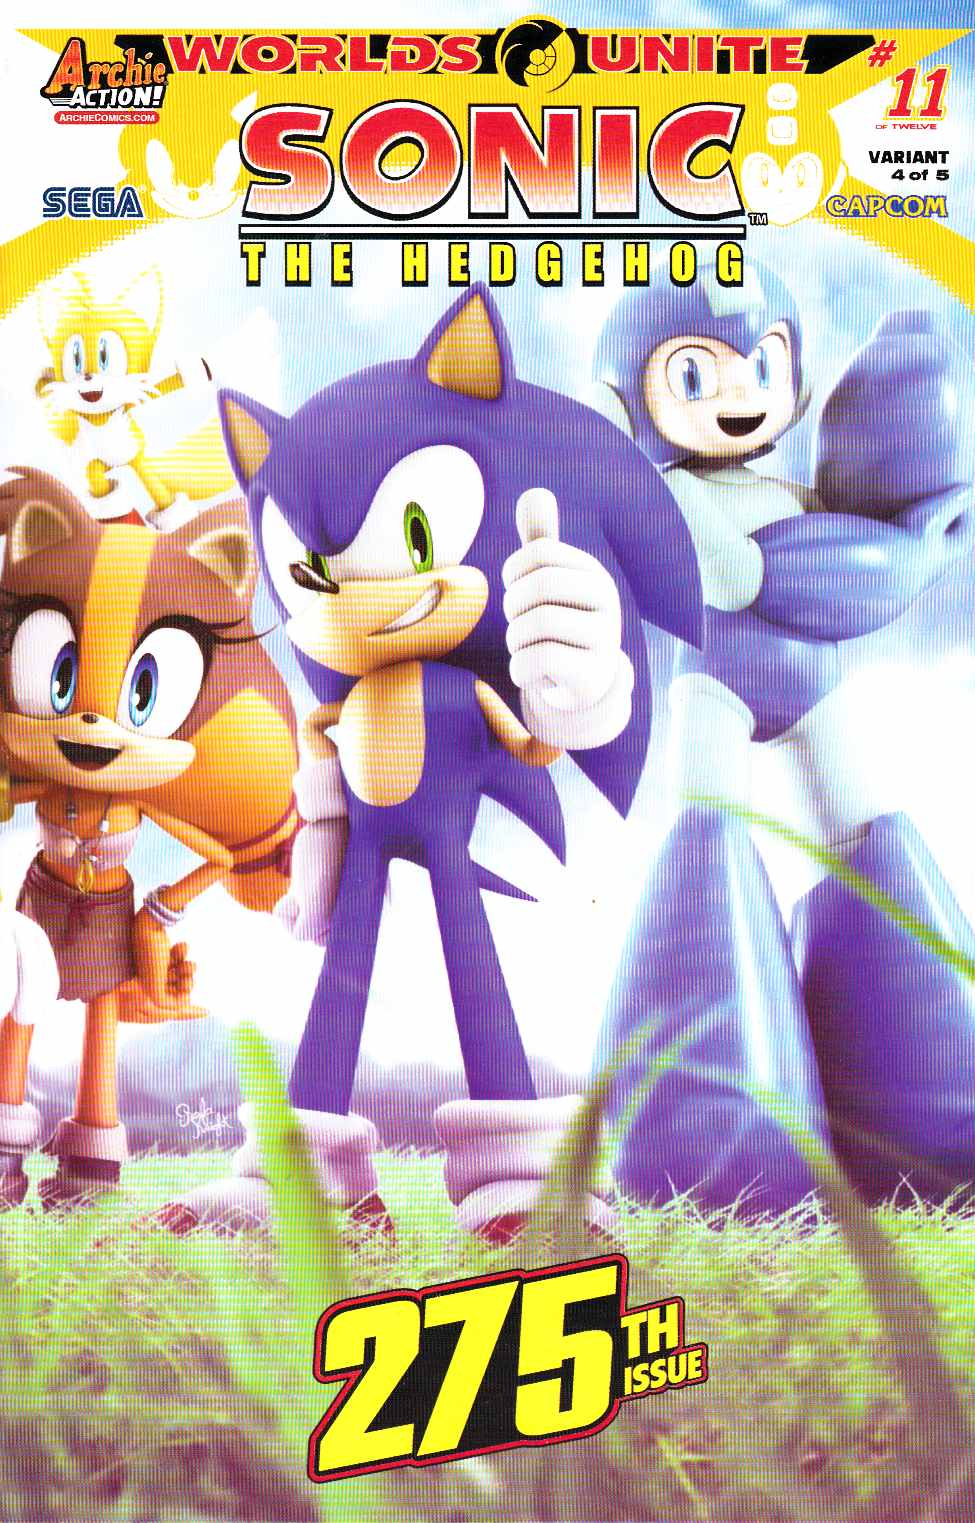 Sonic the Hedgehog #275 Knight Wraparound Variant Cover [Archie Comic] THUMBNAIL